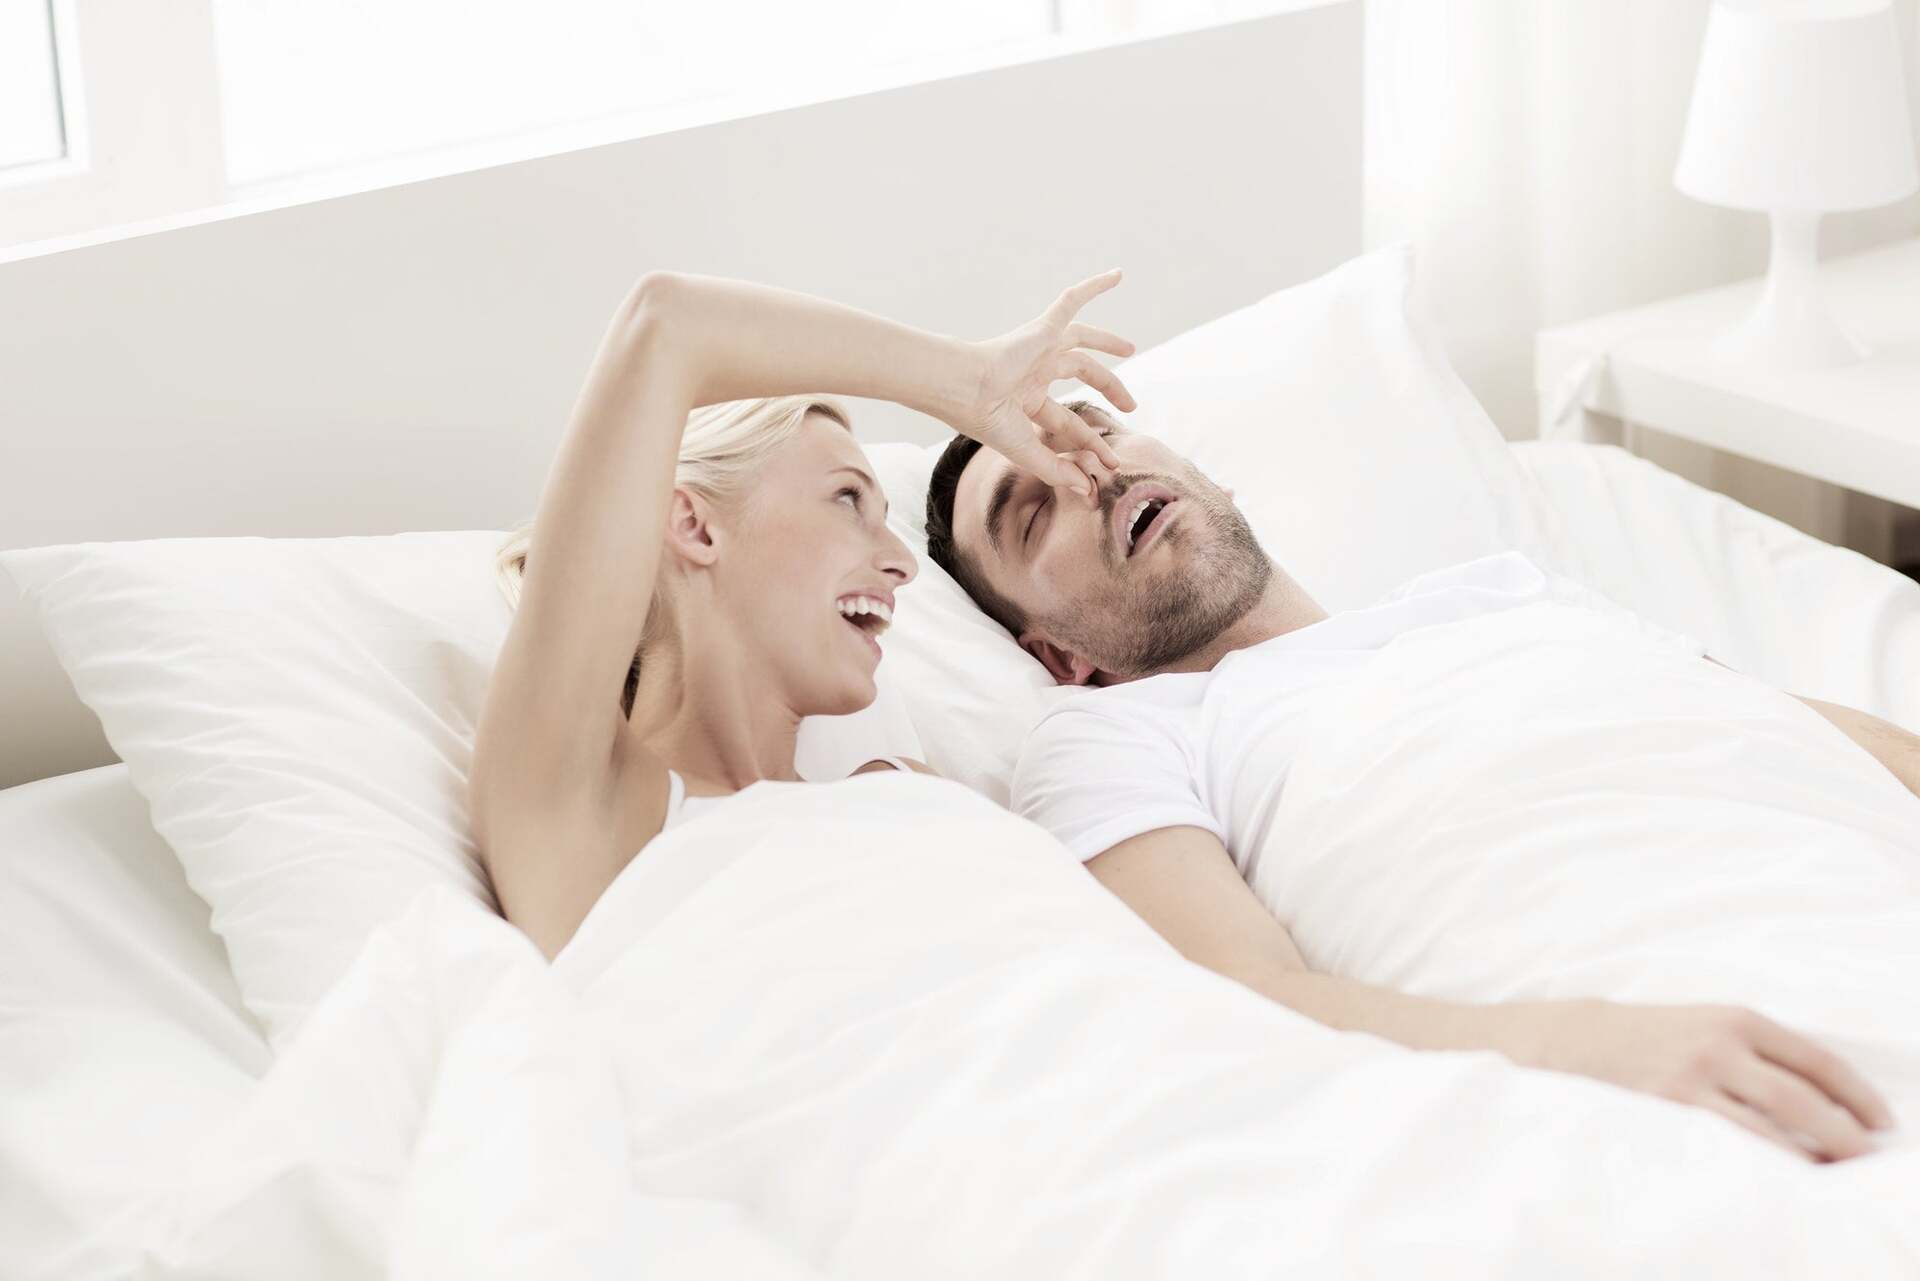 Don't Get April Fooled into Believing These Sleep Myths